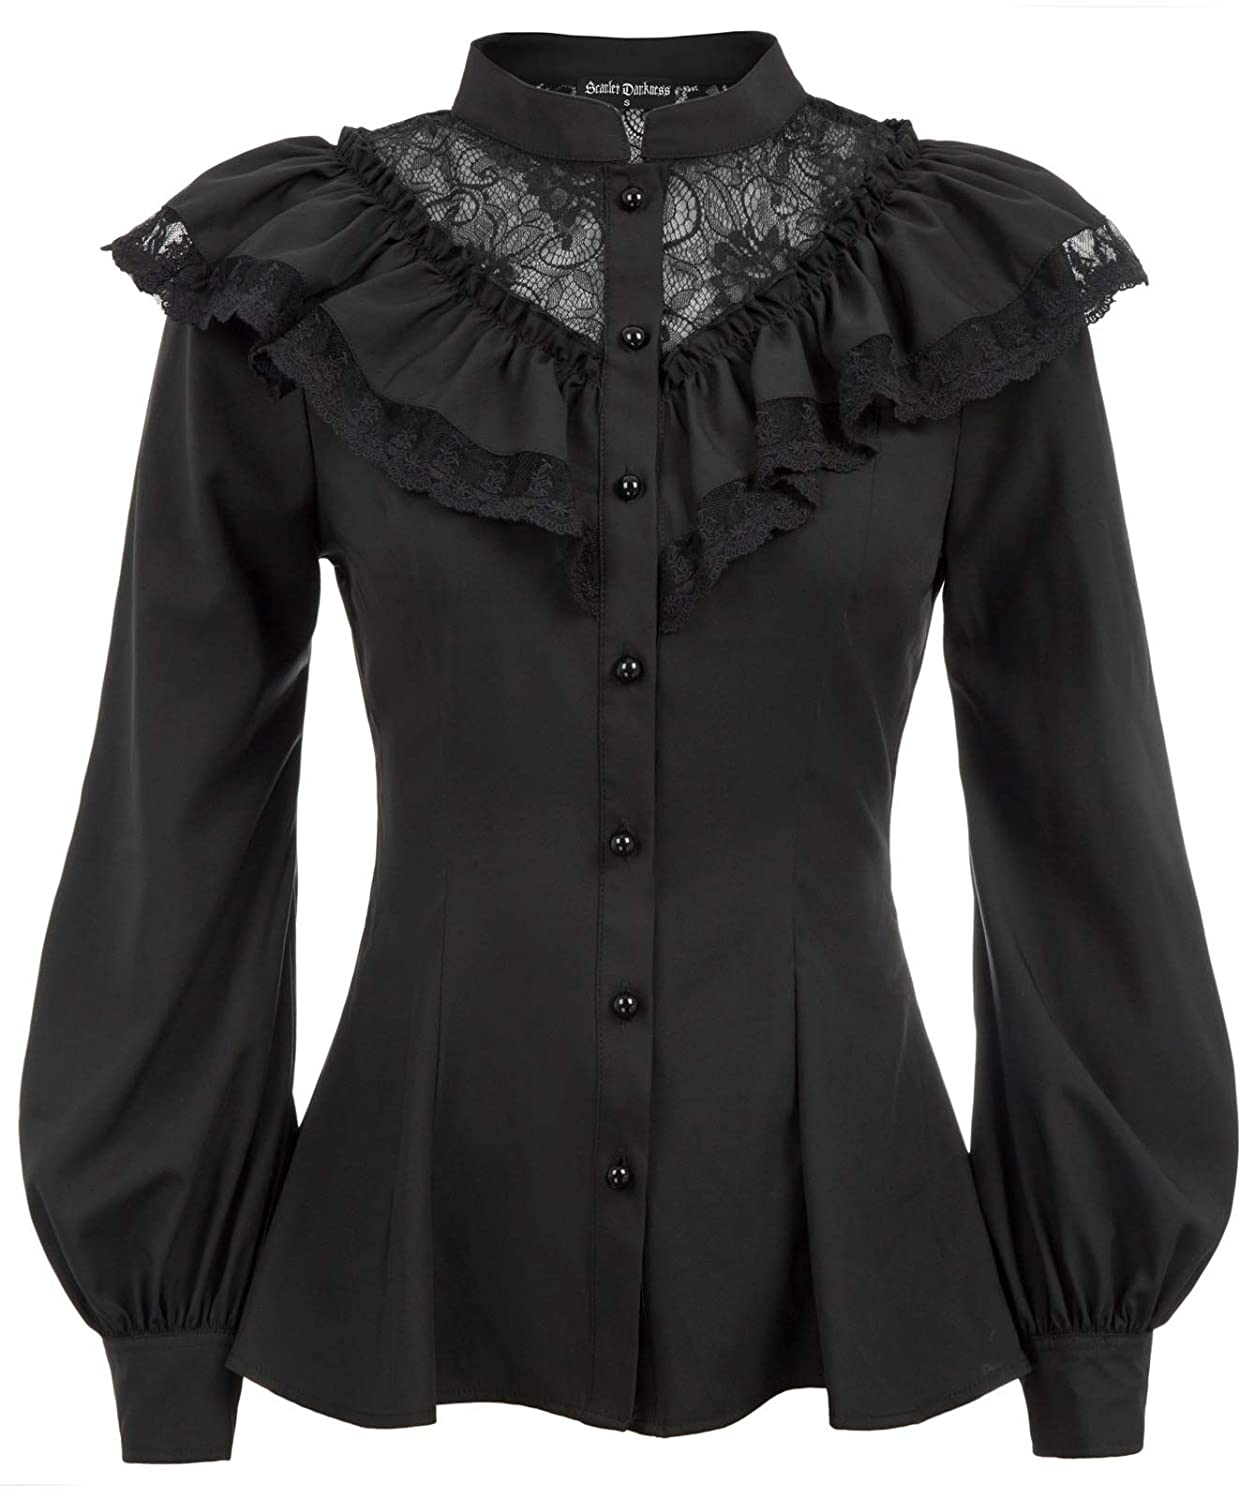 Victorian Blouses, Tops, Shirts, Sweaters Womens Victorian Ruffled Blouse Shirt Steampunk Gothic Tops Long Sleeve $26.99 AT vintagedancer.com